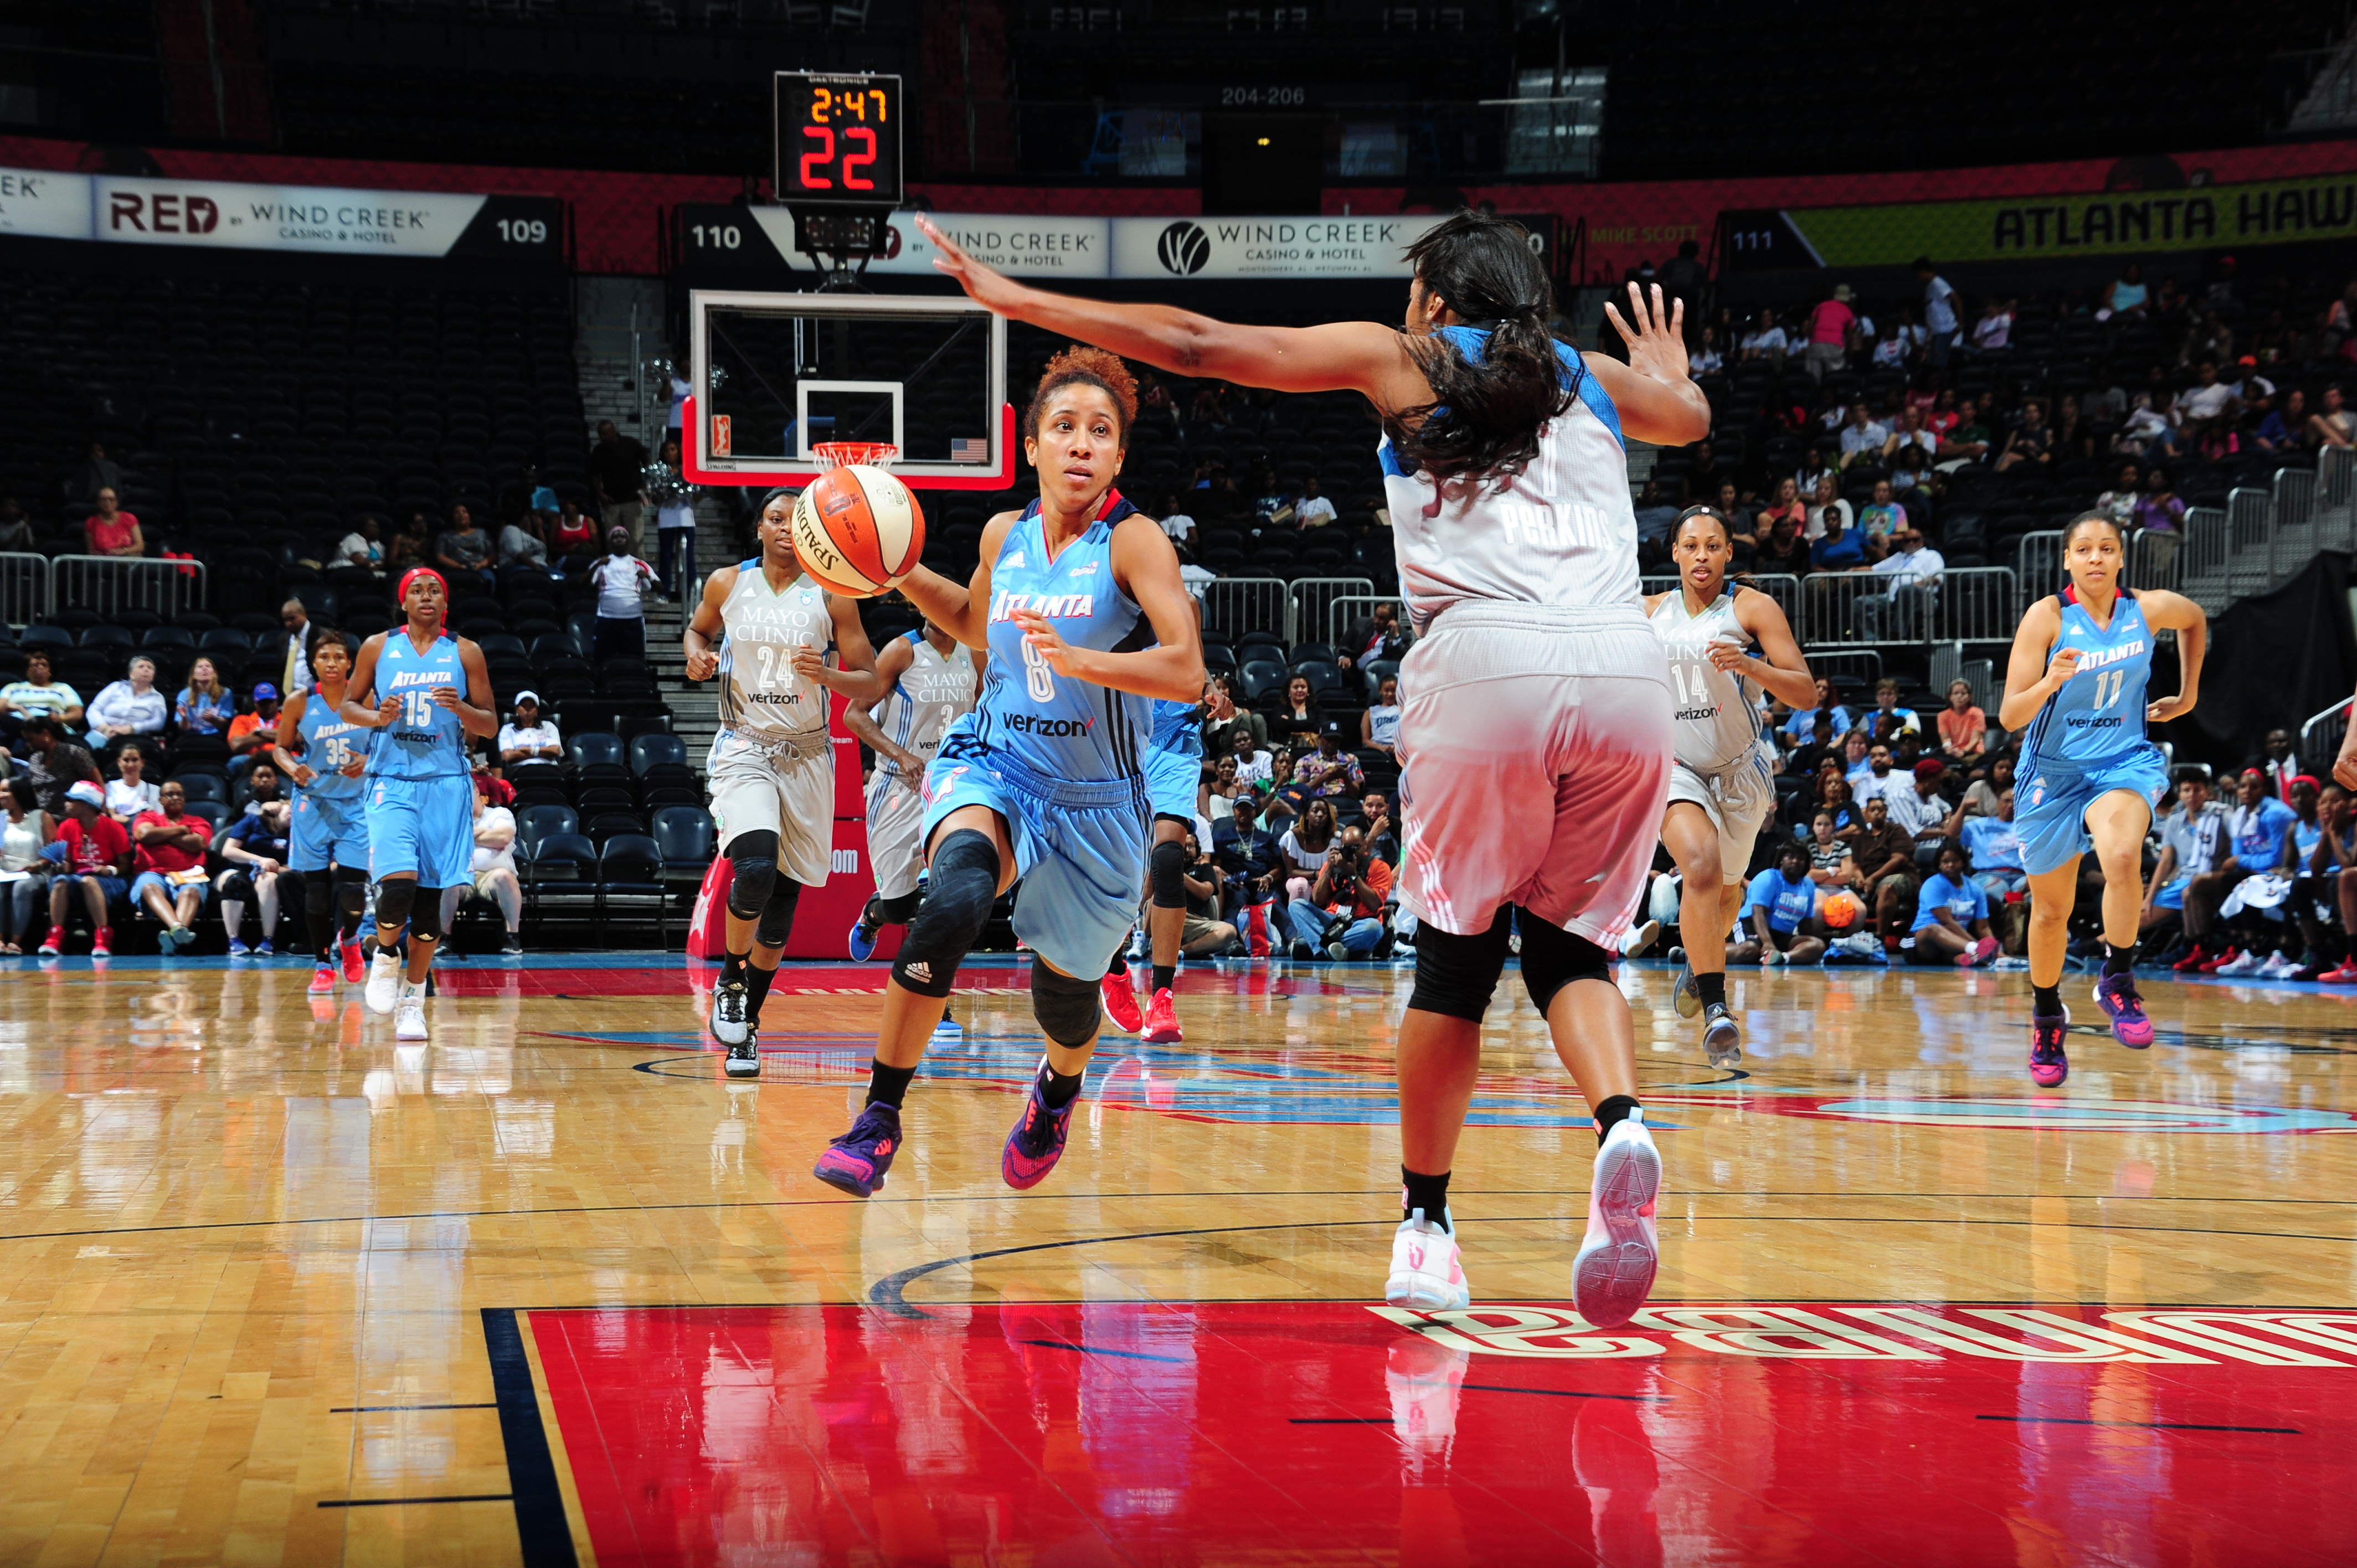 ATLANTA, GA - JUNE 10: Carla Cortijo #8 of the Atlanta Dream handles the ball against the Minnesota Lynx on June 10, 2016 at Philips Arena in Atlanta, Georgia. NOTE TO USER: User expressly acknowledges and agrees that, by downloading and/or using this Photograph, user is consenting to the terms and conditions of the Getty Images License Agreement. Mandatory Copyright Notice: Copyright 2016 NBAE (Photo by Scott Cunningham/NBAE via Getty Images)